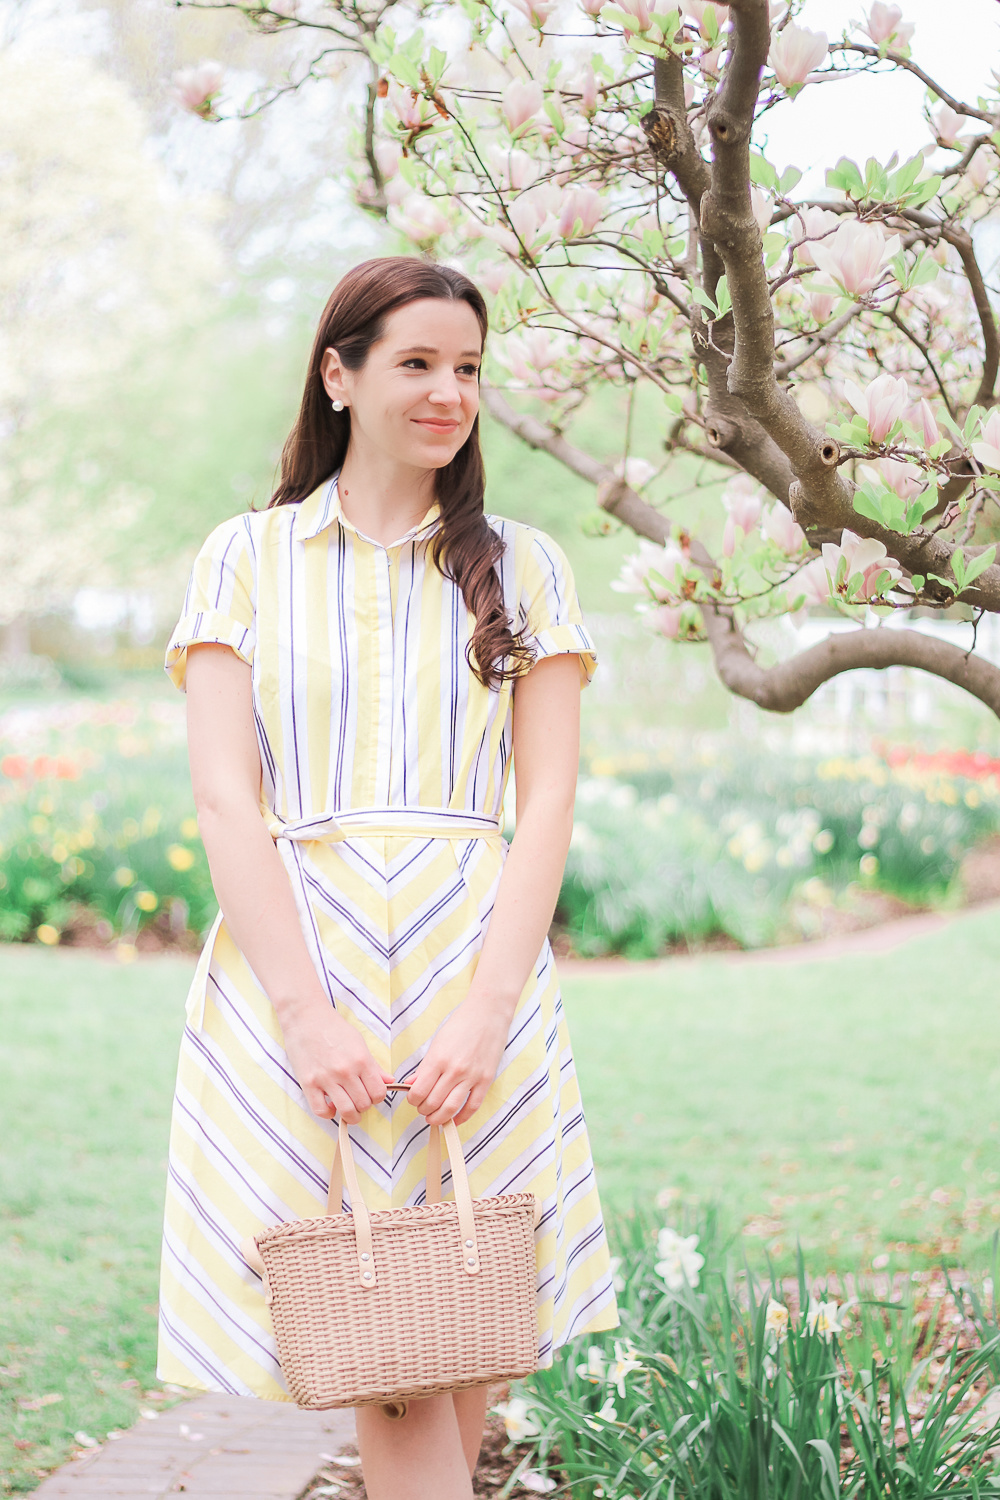 Target Spring Shopping Haul: Top Fashion and Beauty Finds by affordable fashion blogger Stephanie Ziajka from Diary of a Debutante, Target A New Day Yellow Striped Short Sleeve Shirtdress, Women's Adelina Espadrilles Slide Sandals, Basket Crossbody Bag